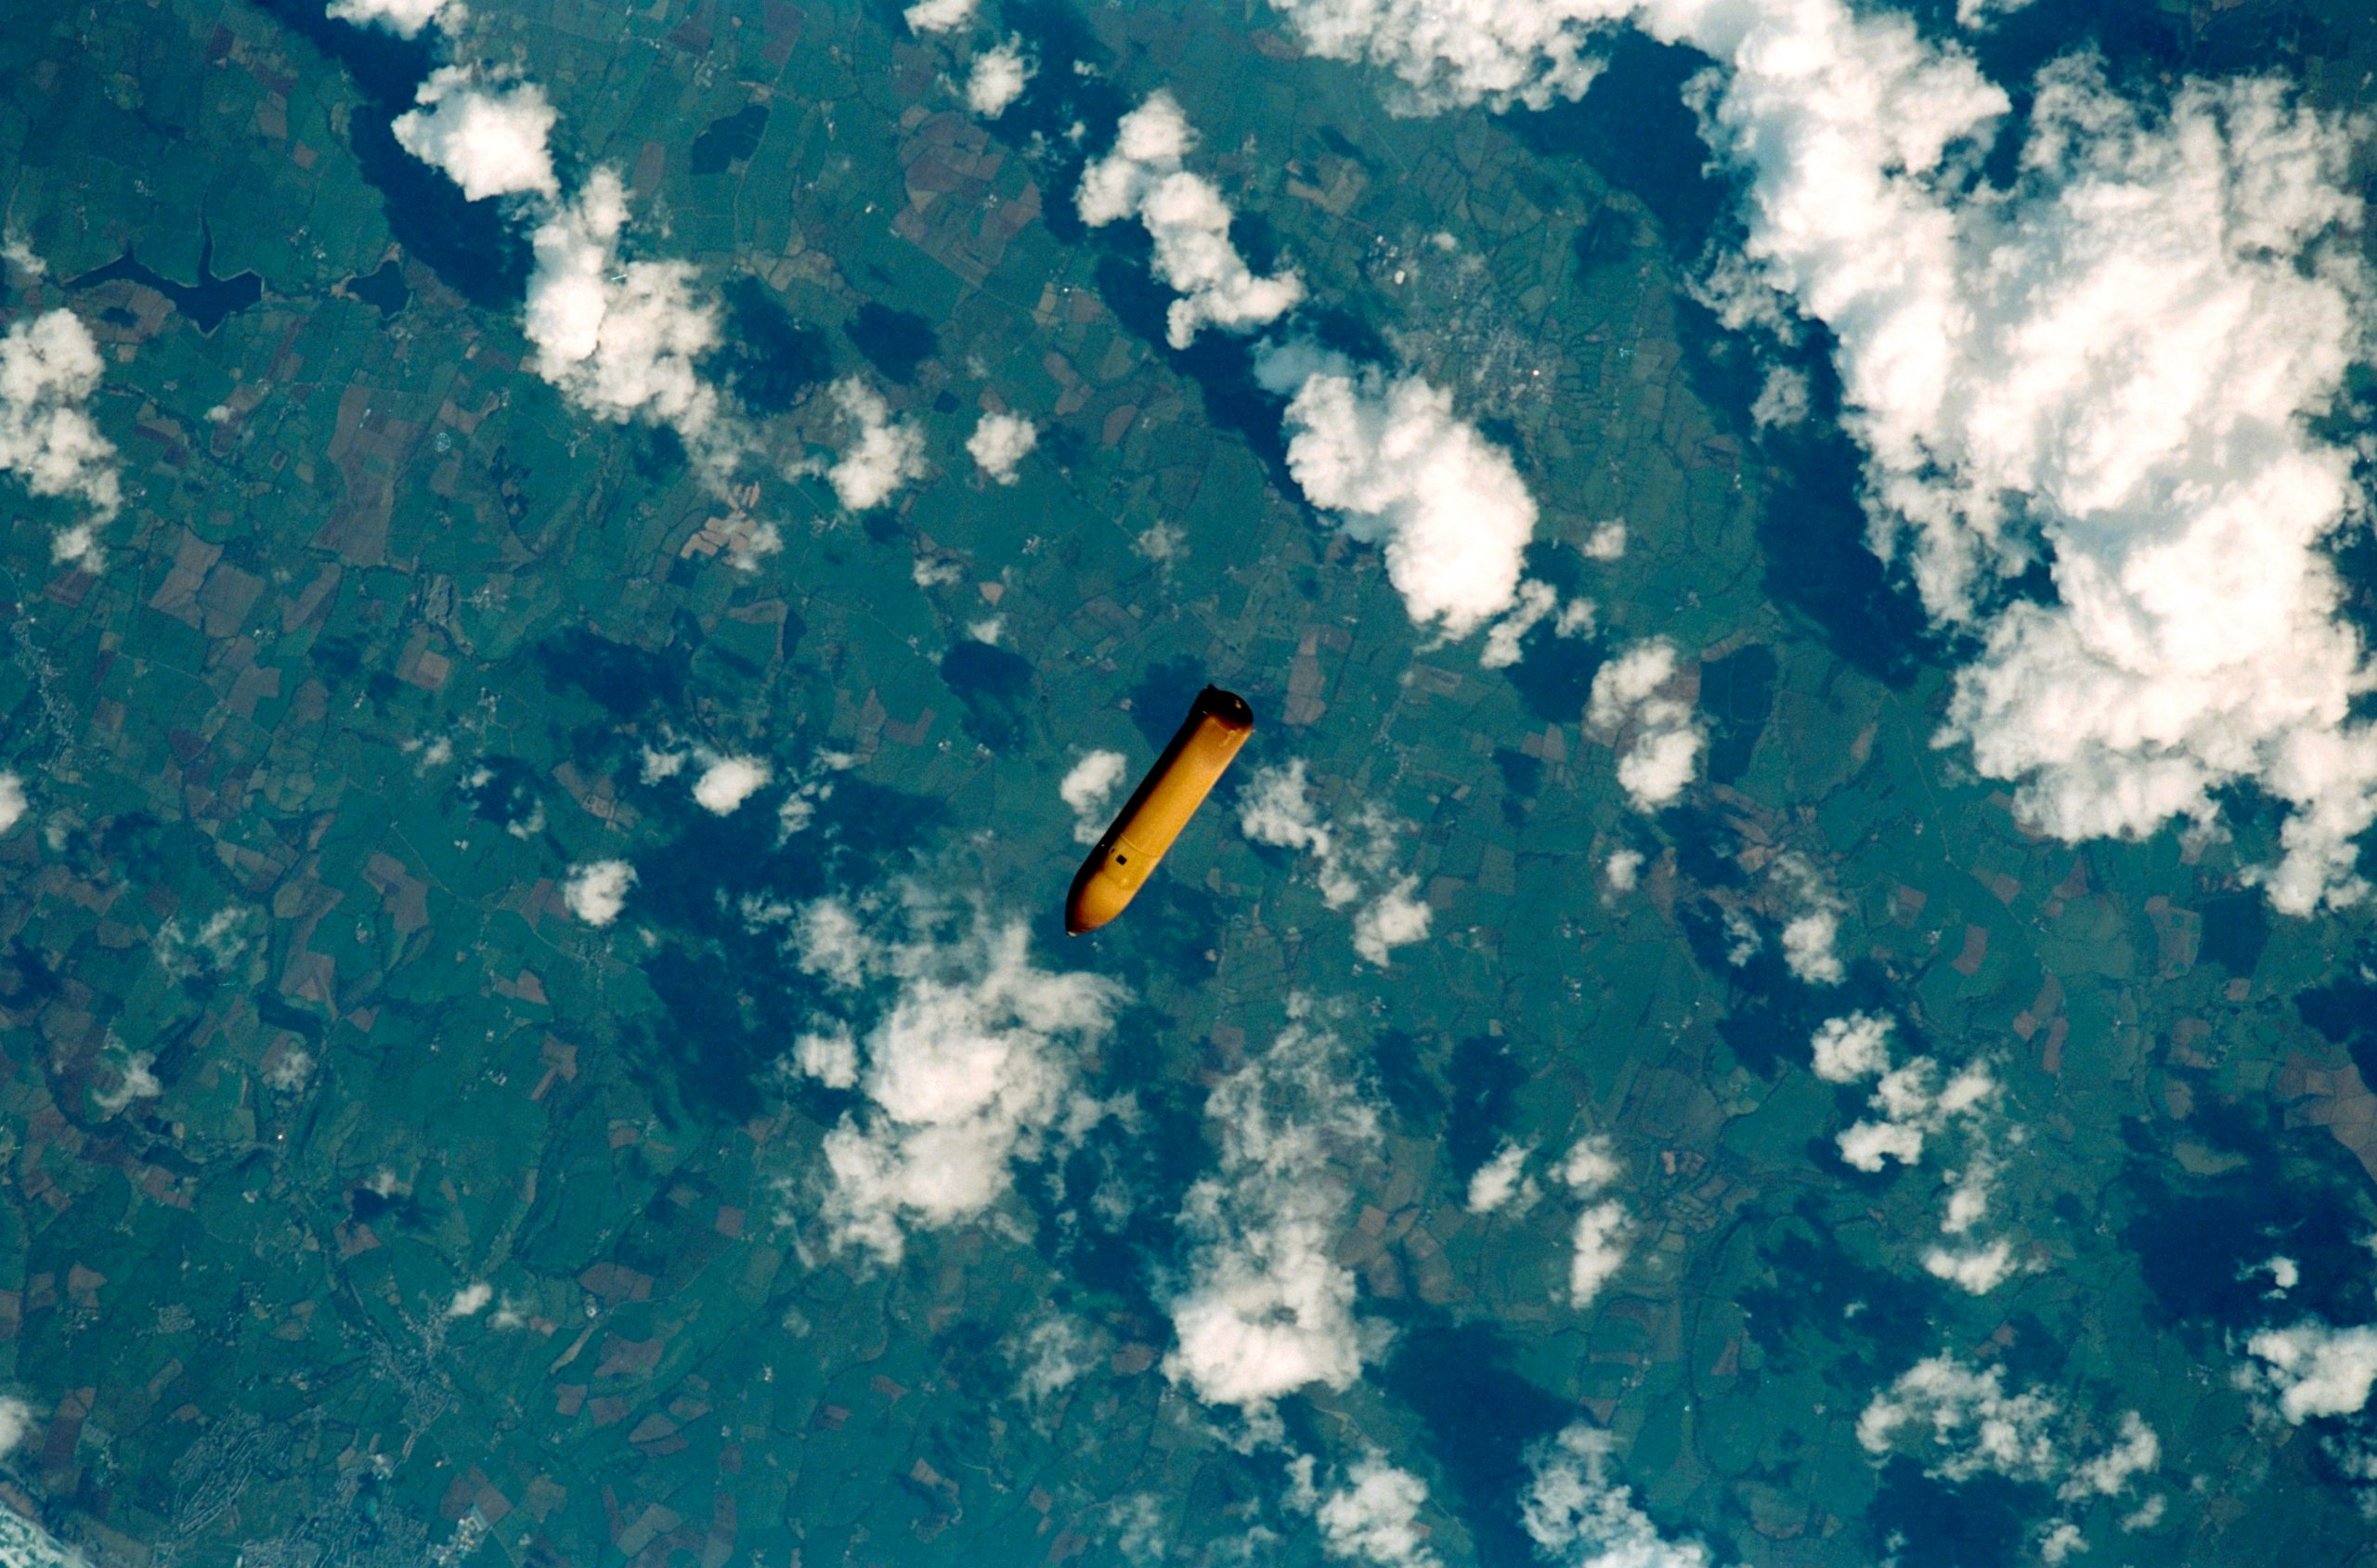 The external tank from STS-102 falls to Earth.